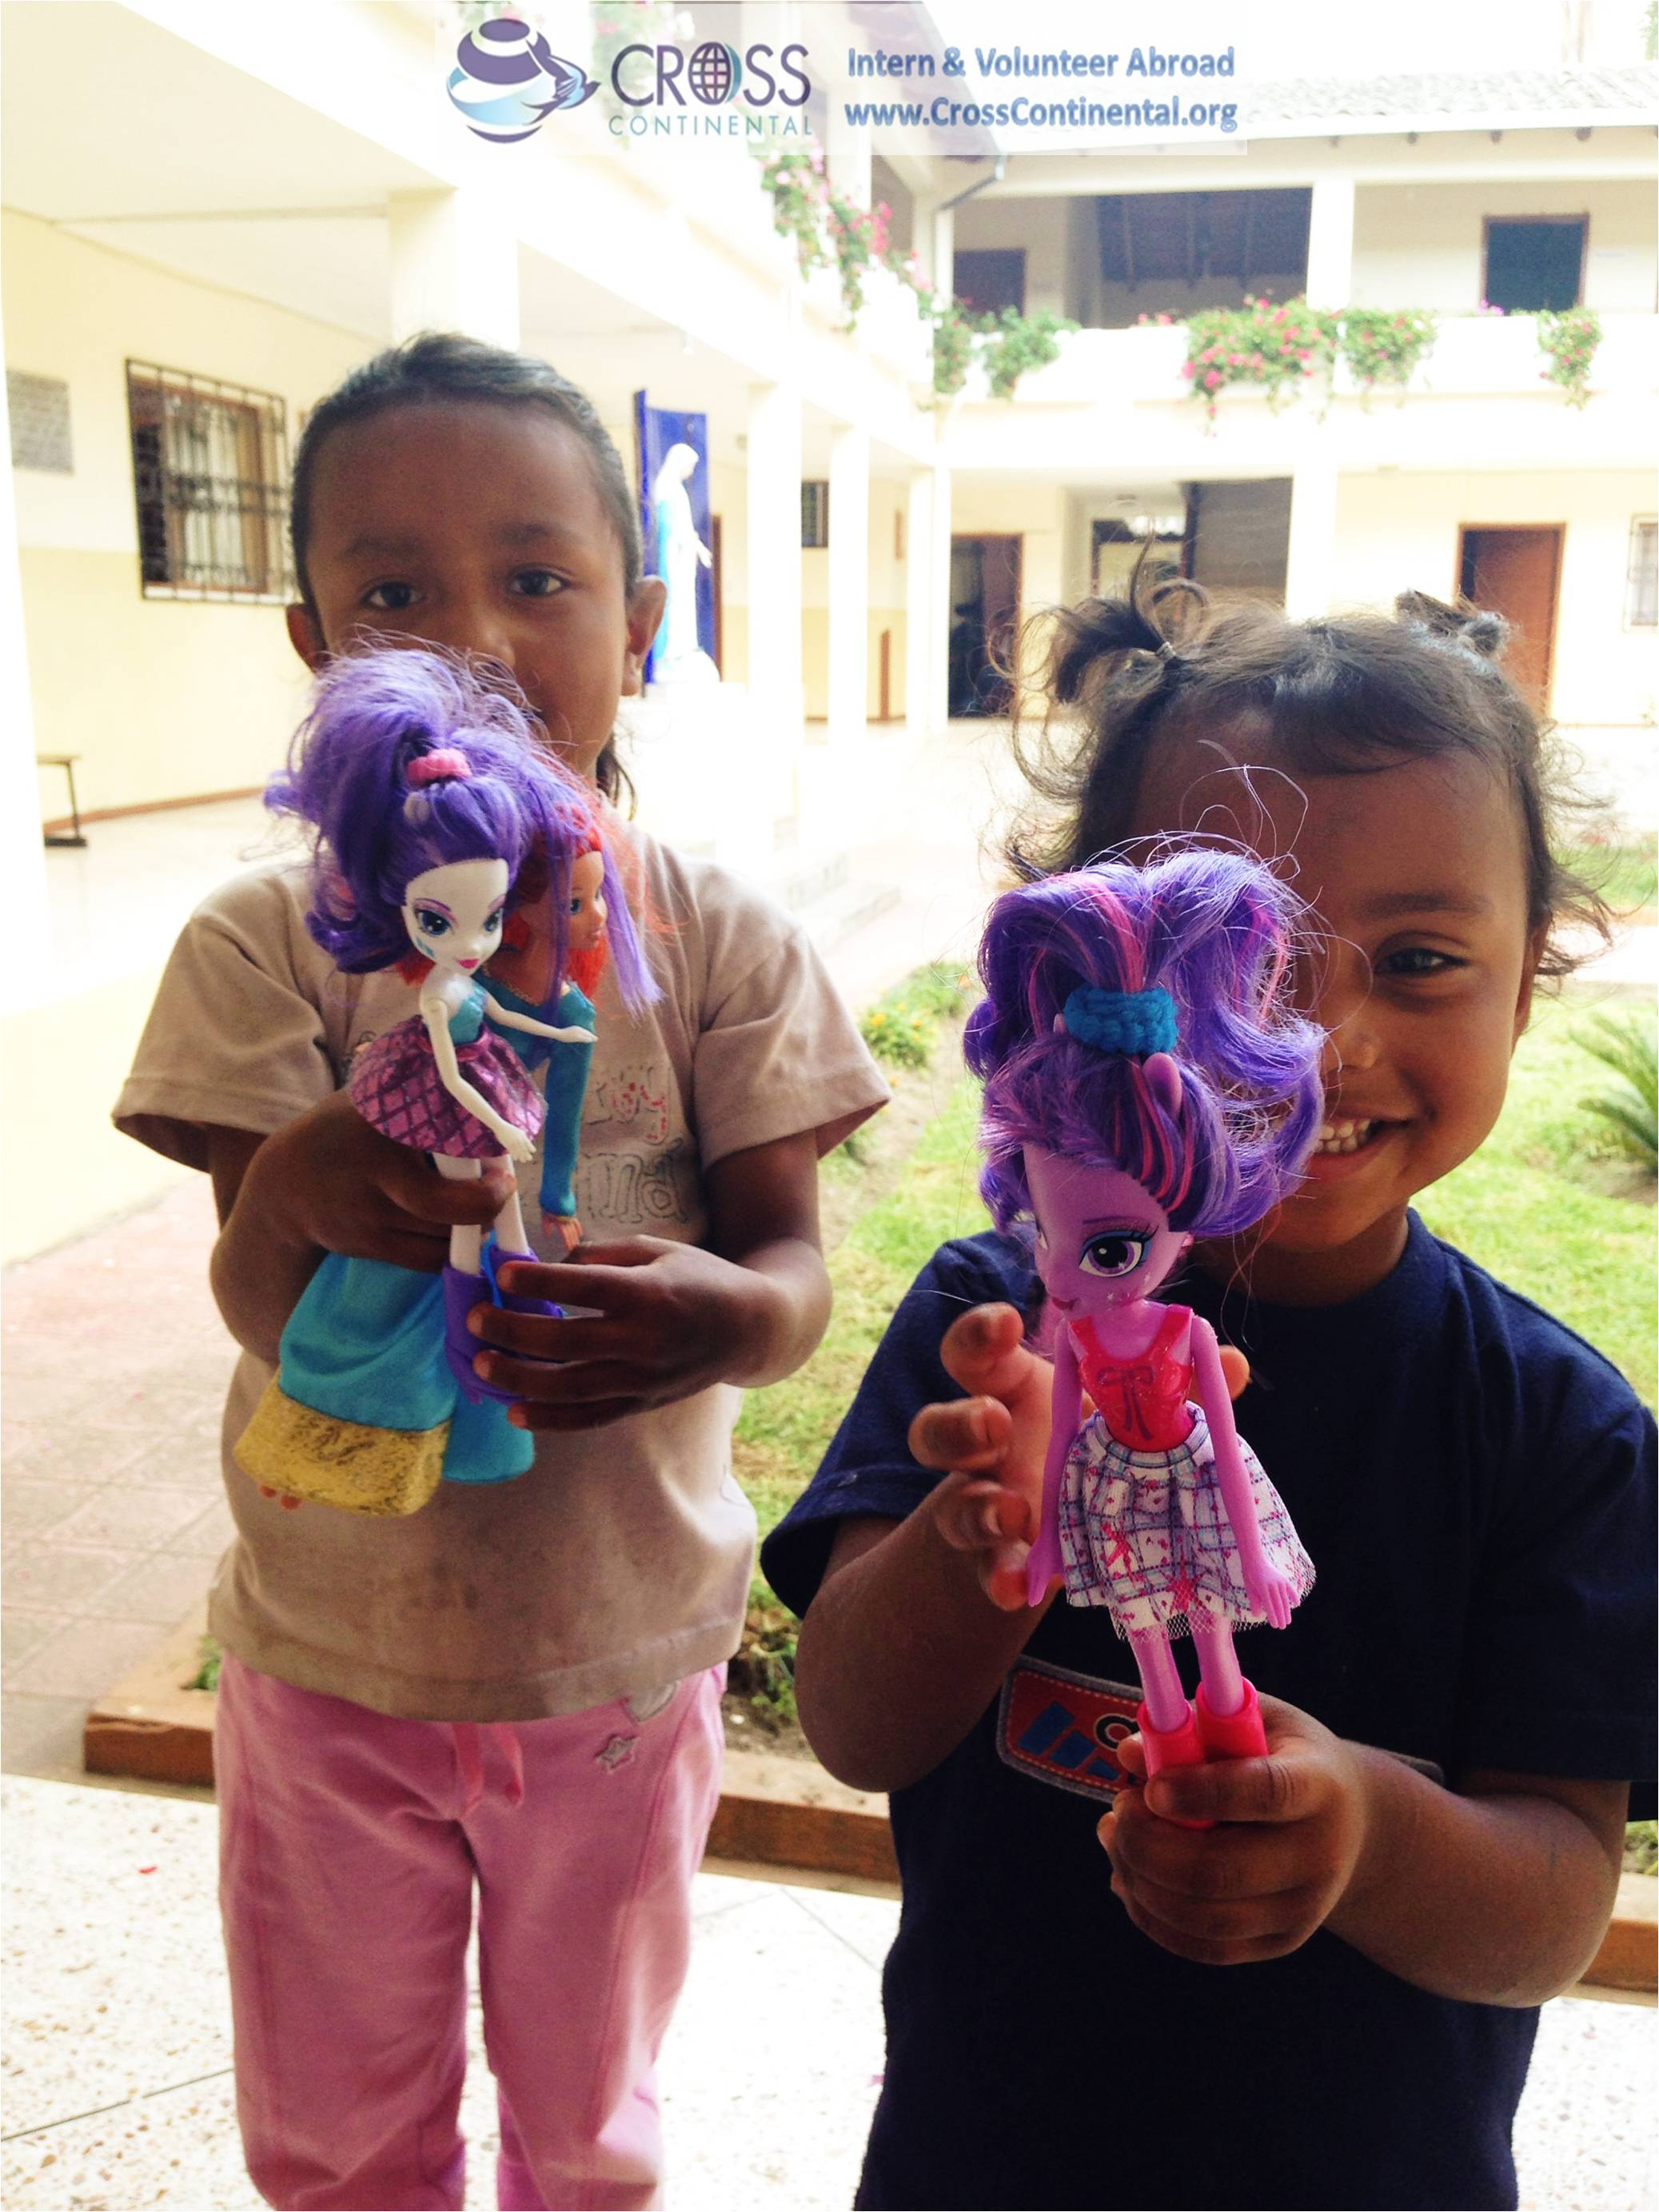 orphanages in america Help orphans worldwide reach their potential travel, go on adventures, and give your time to children in orphanages.